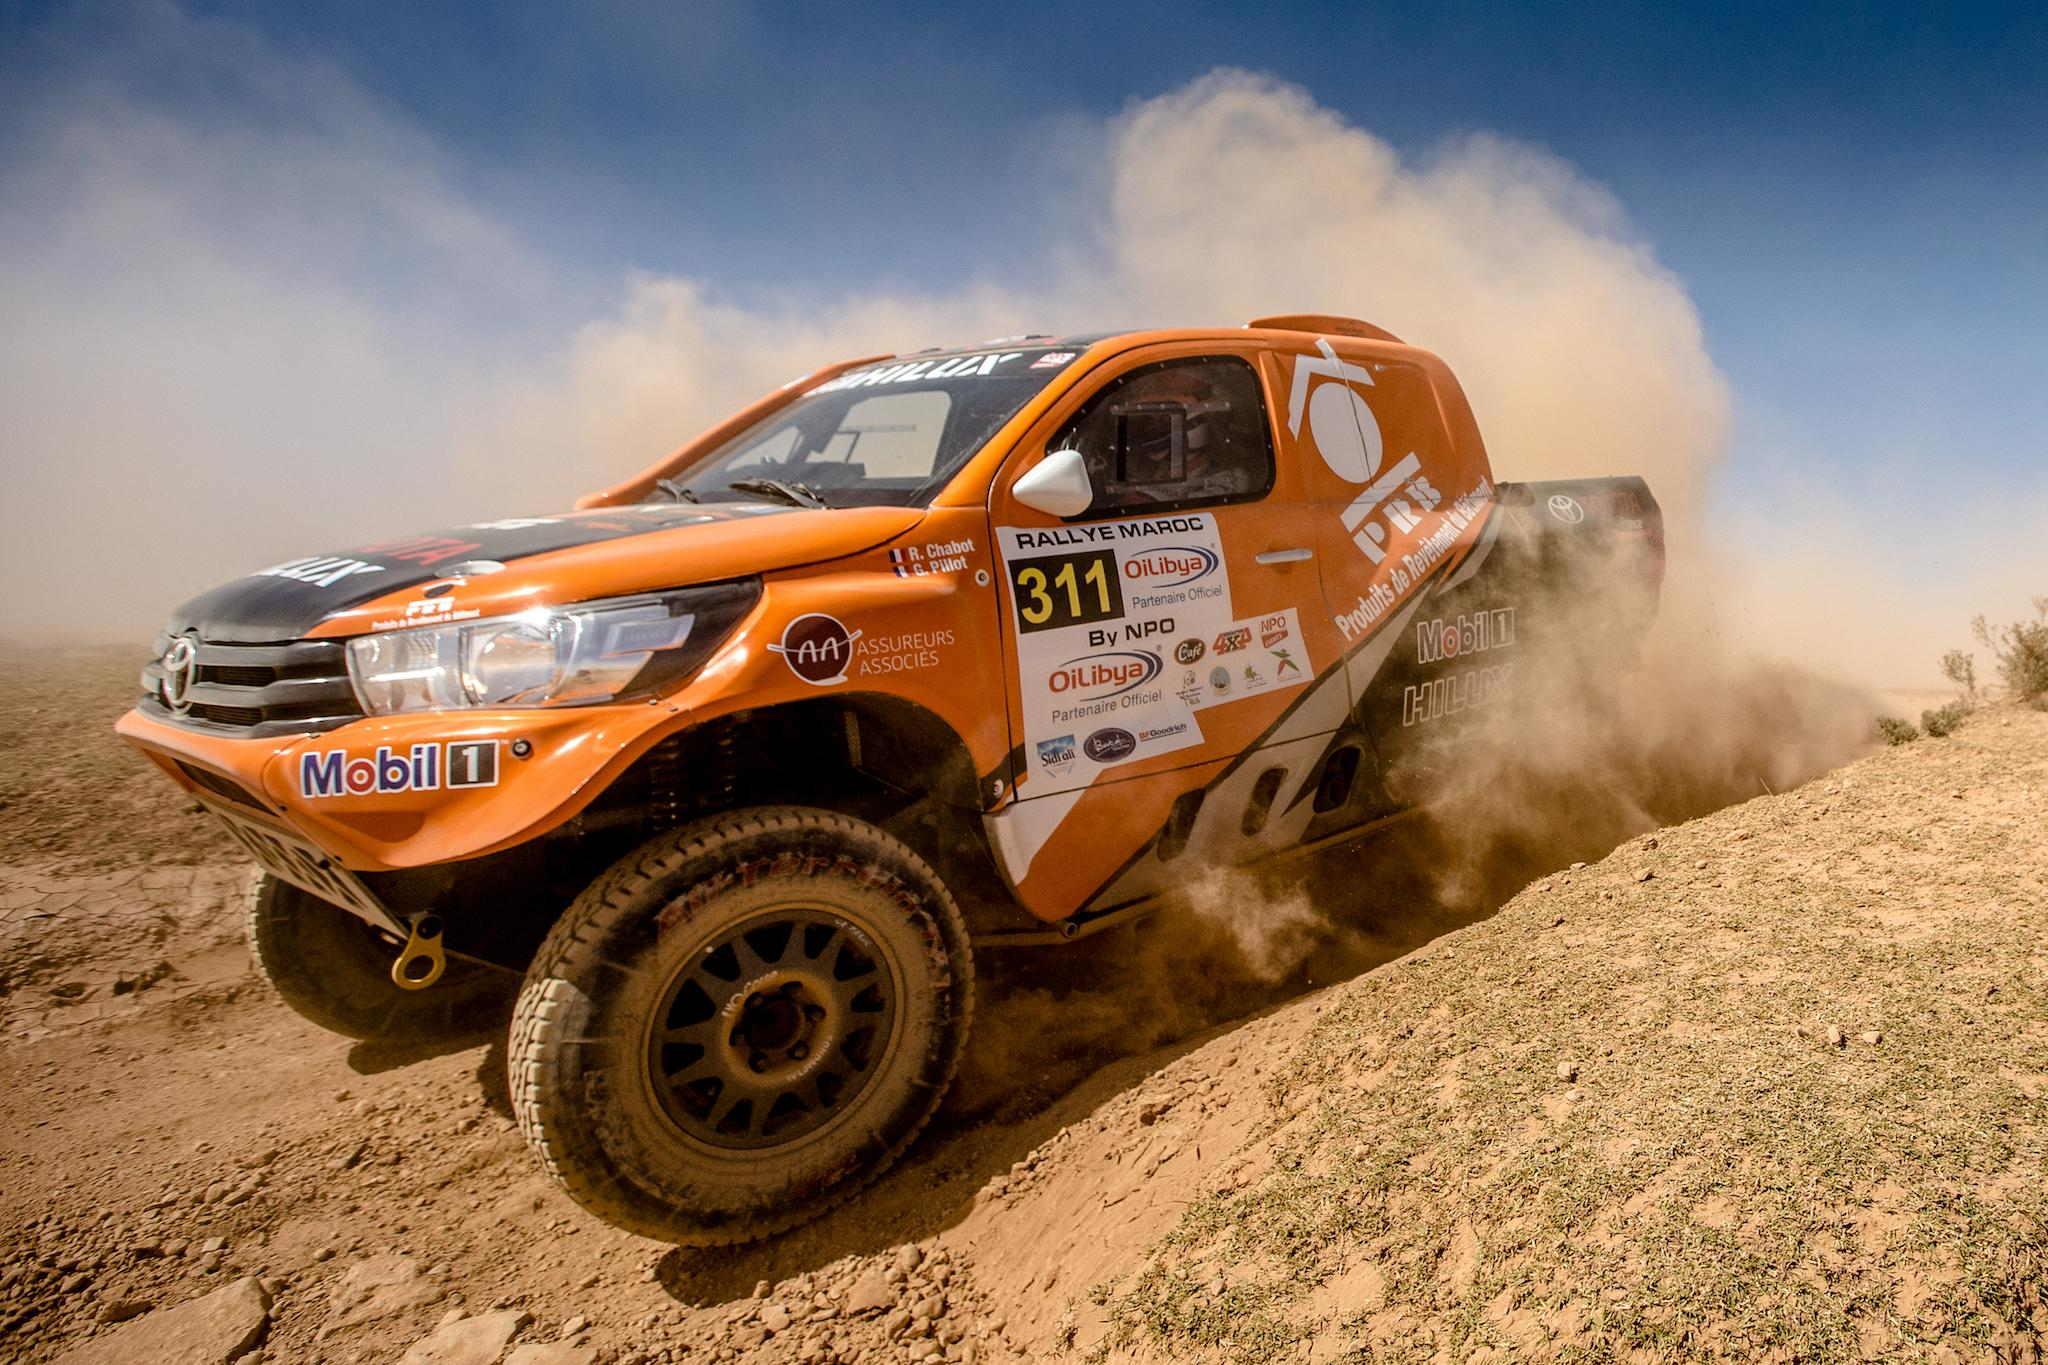 05 21 2018 Toyota Hilux Problems After Retiring From The Italian Baja Last Year And Then Being Forced To Fight Back Early Finish 30th Overall In Rally Of Morocco